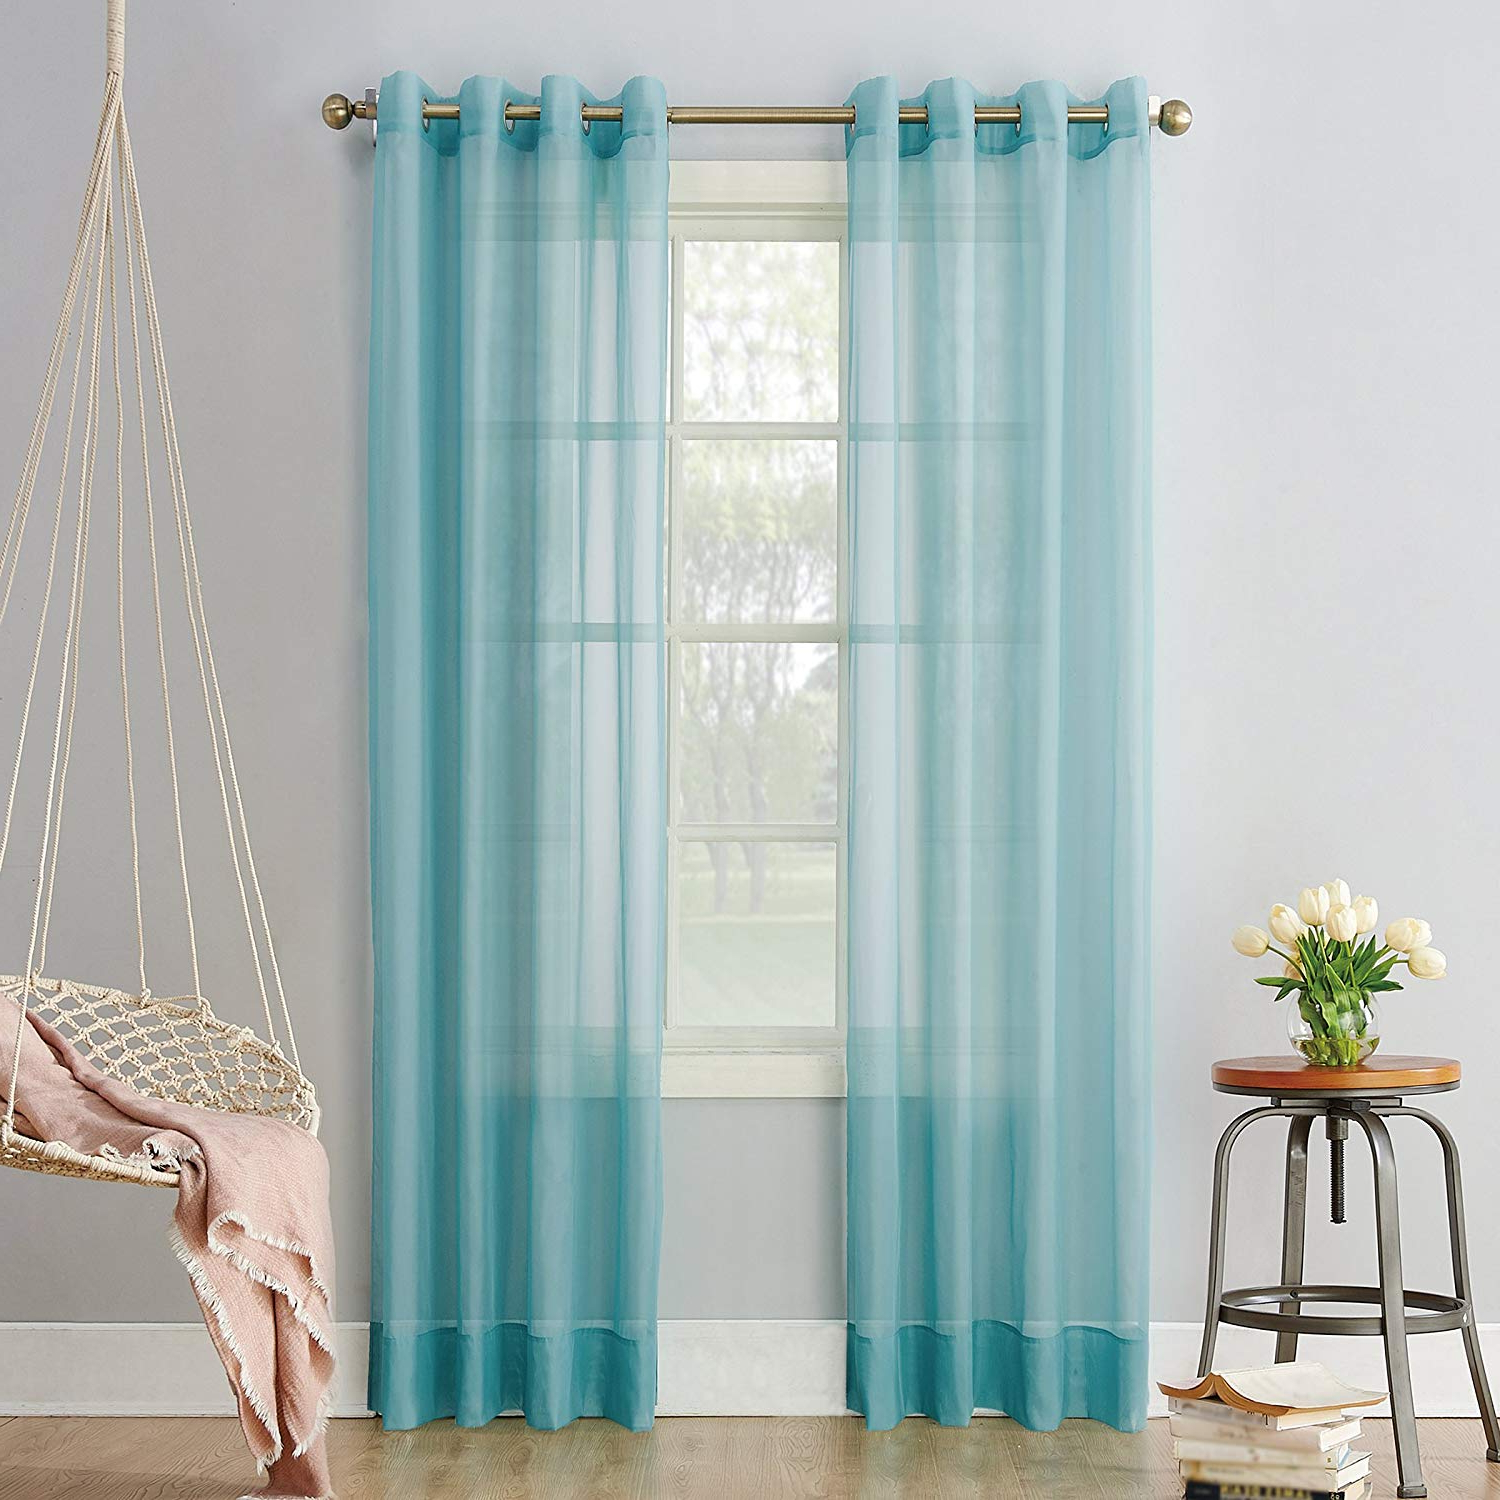 """Emily Sheer Voile Grommet Curtain Panels For Well Liked No. 918 Emily Sheer Voile Grommet Curtain Panel, 59"""" X 63"""", Aegean Blue (Gallery 5 of 20)"""